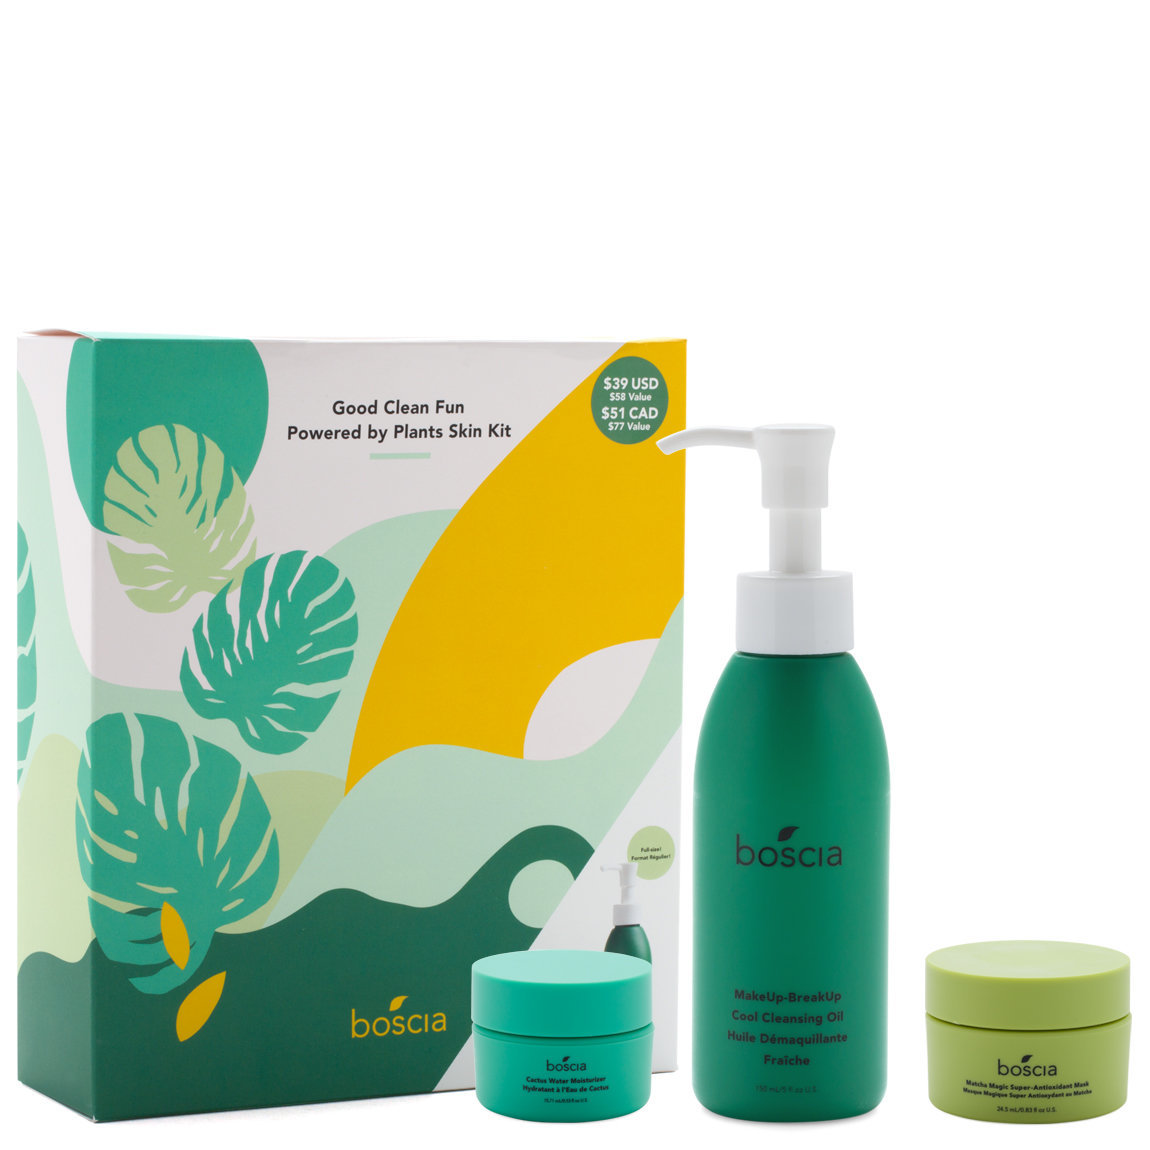 boscia - Good Clean Fun - Powered By Plants Skin Kit